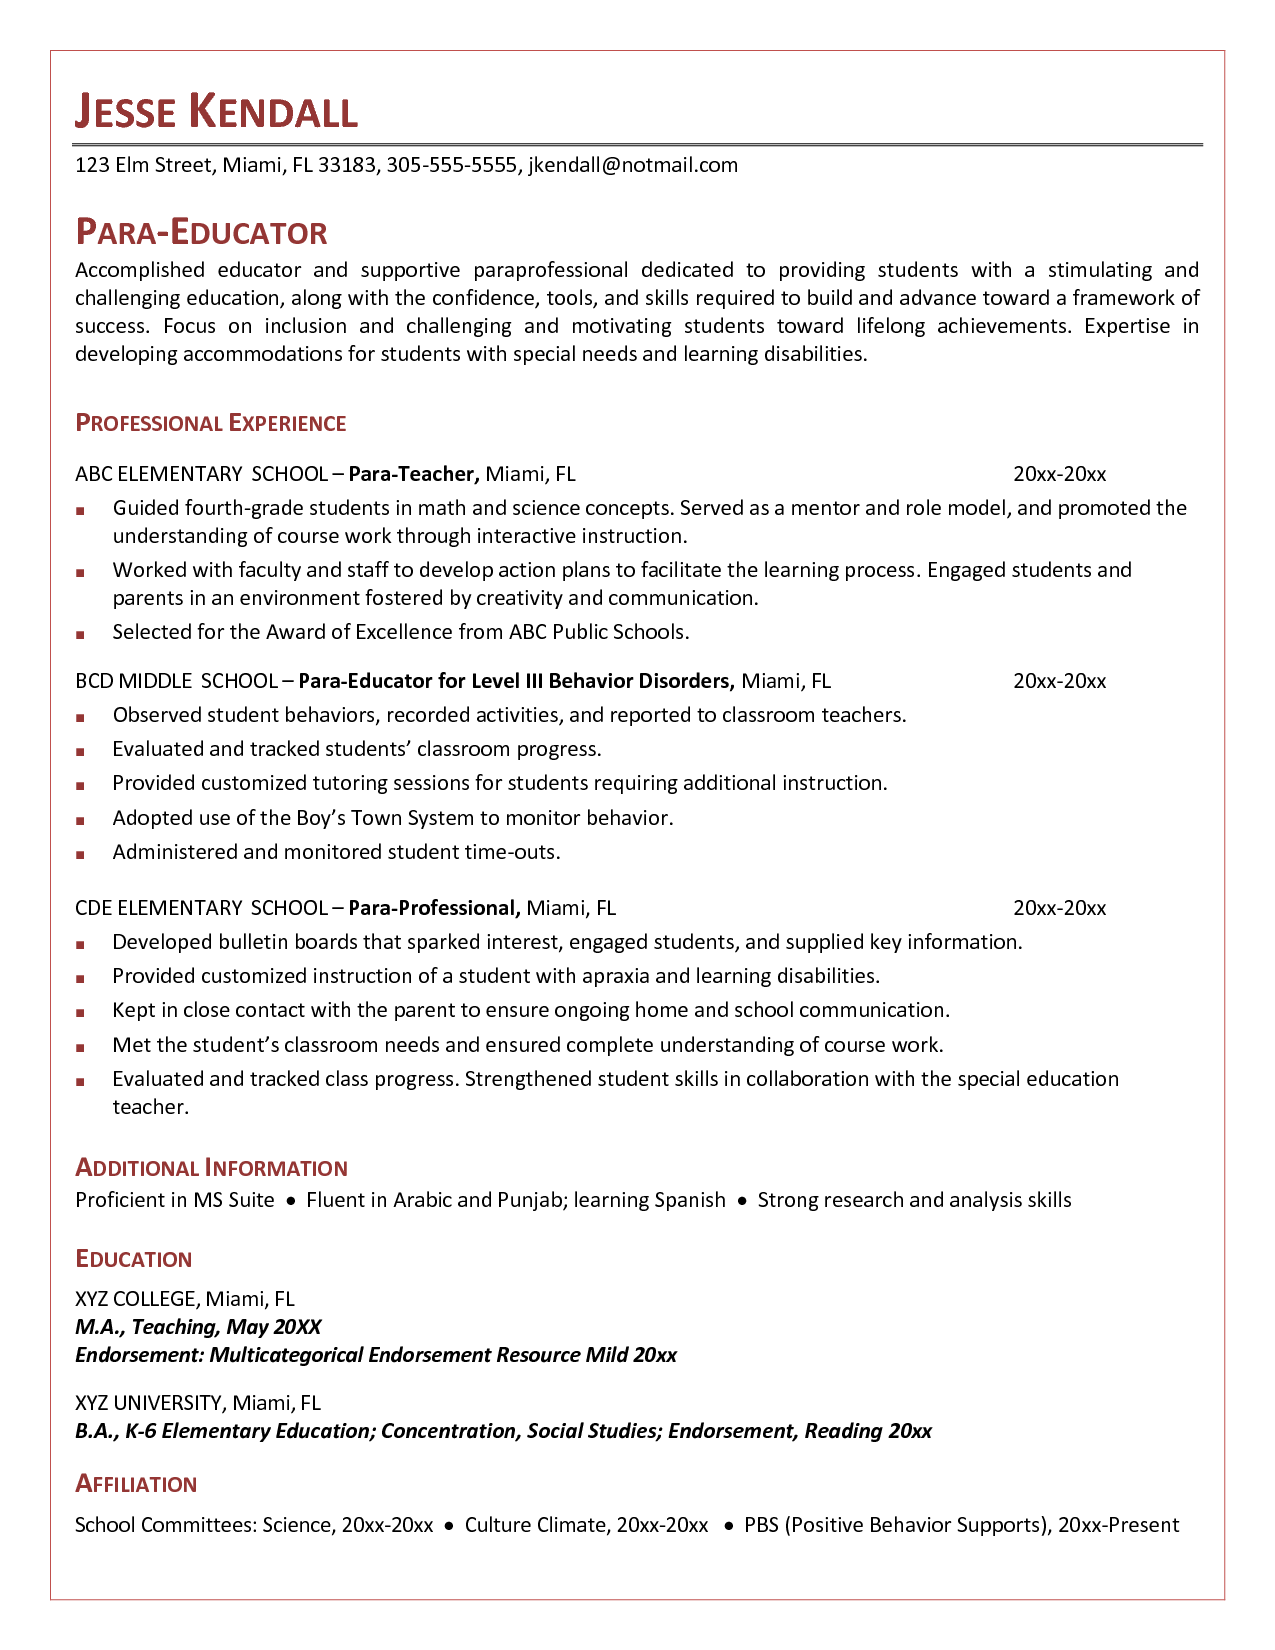 Cover Letter For Paraeducator Examplecareer Resume Template Career Resume Template Teaching Resume Examples Teaching Resume Teacher Resume Template